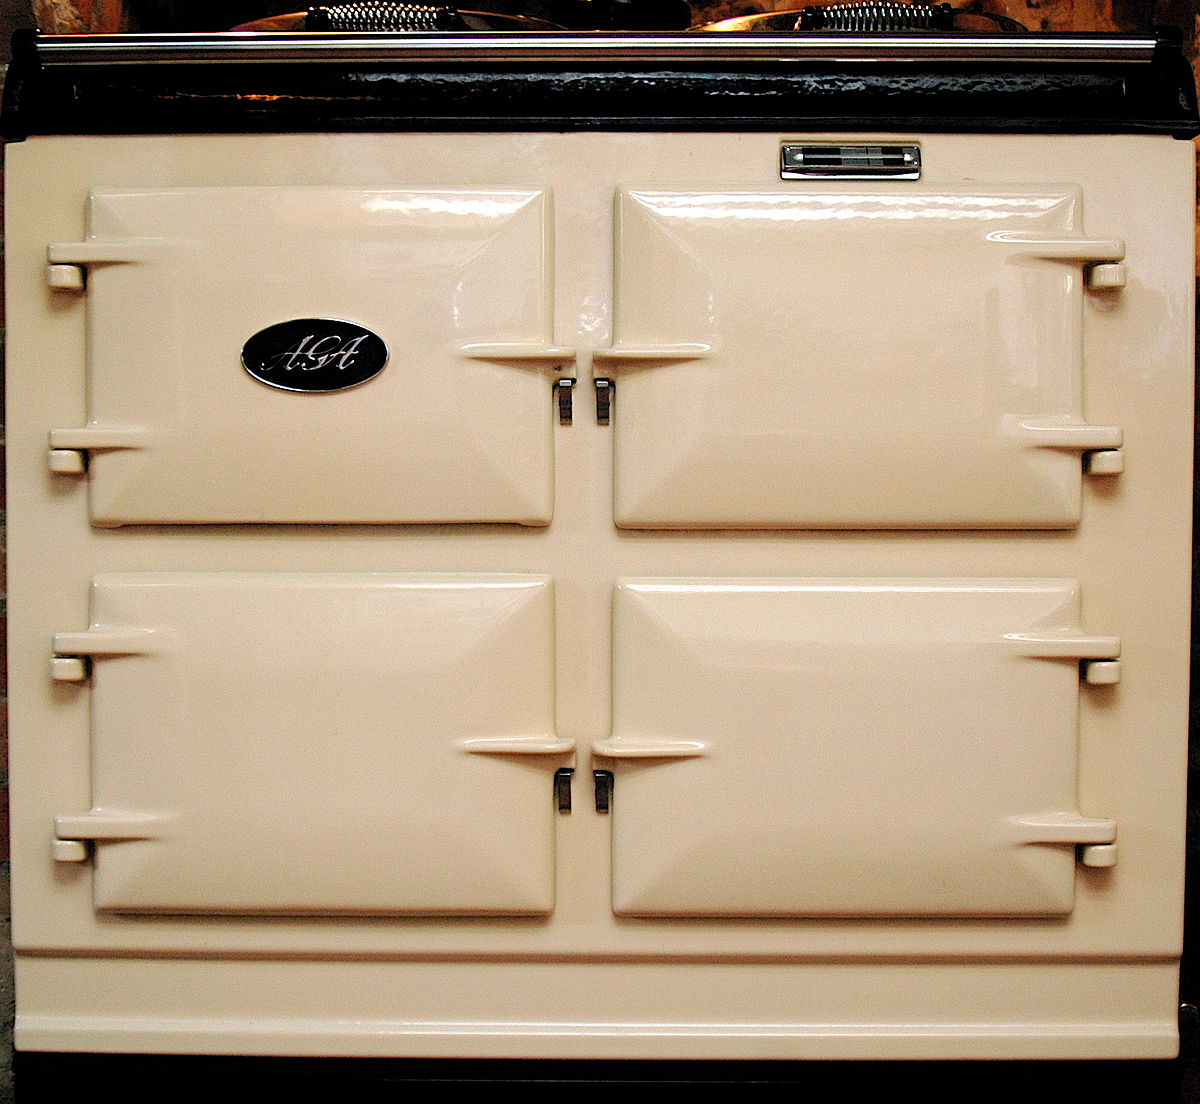 aga cooker wikipedia